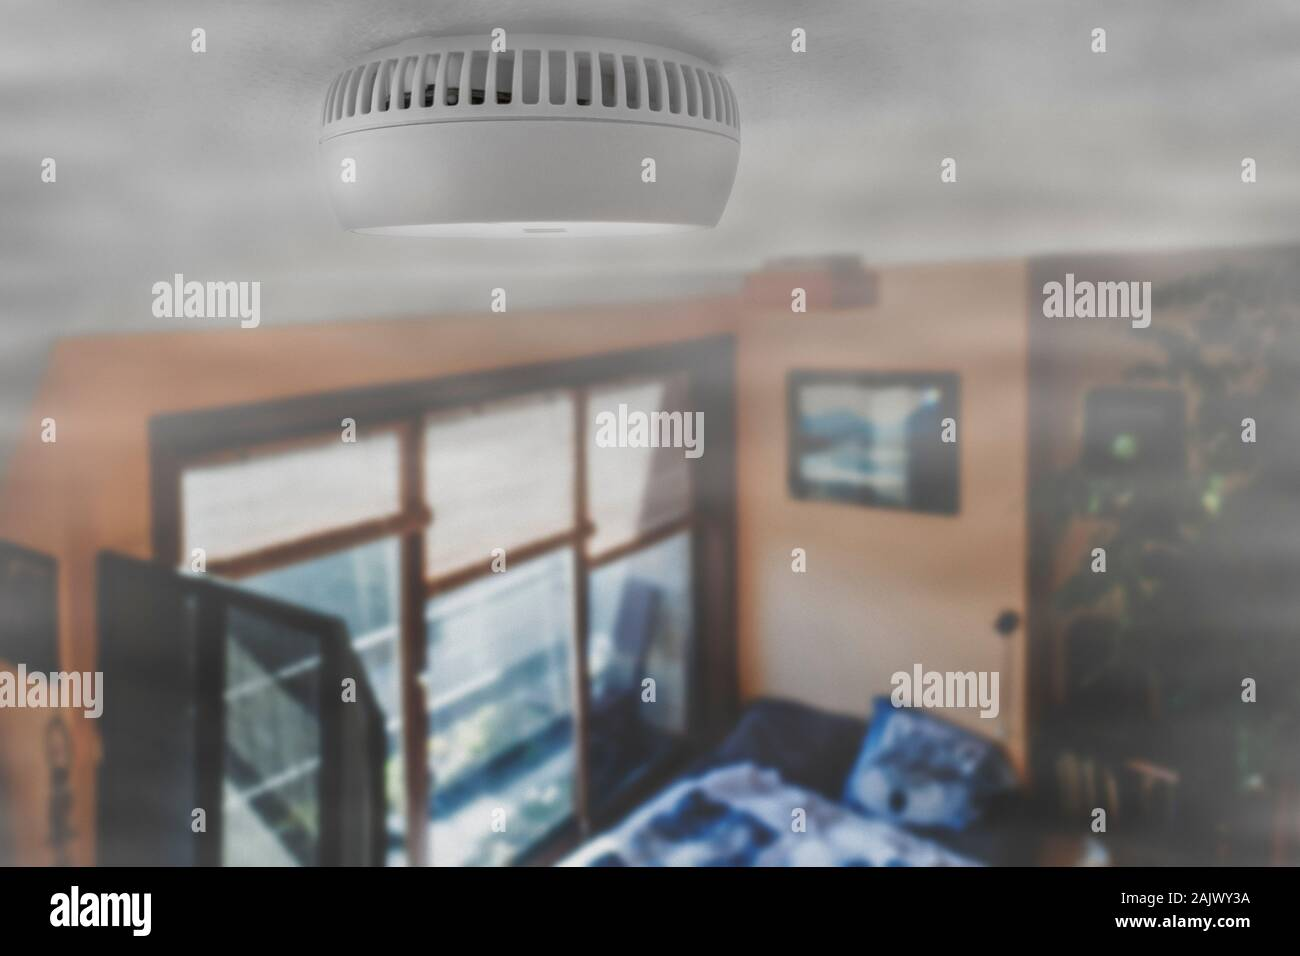 Domestic smoke alarm / battery powered smoke detector on the ceiling in room filled with smoke from fire at home Stock Photo